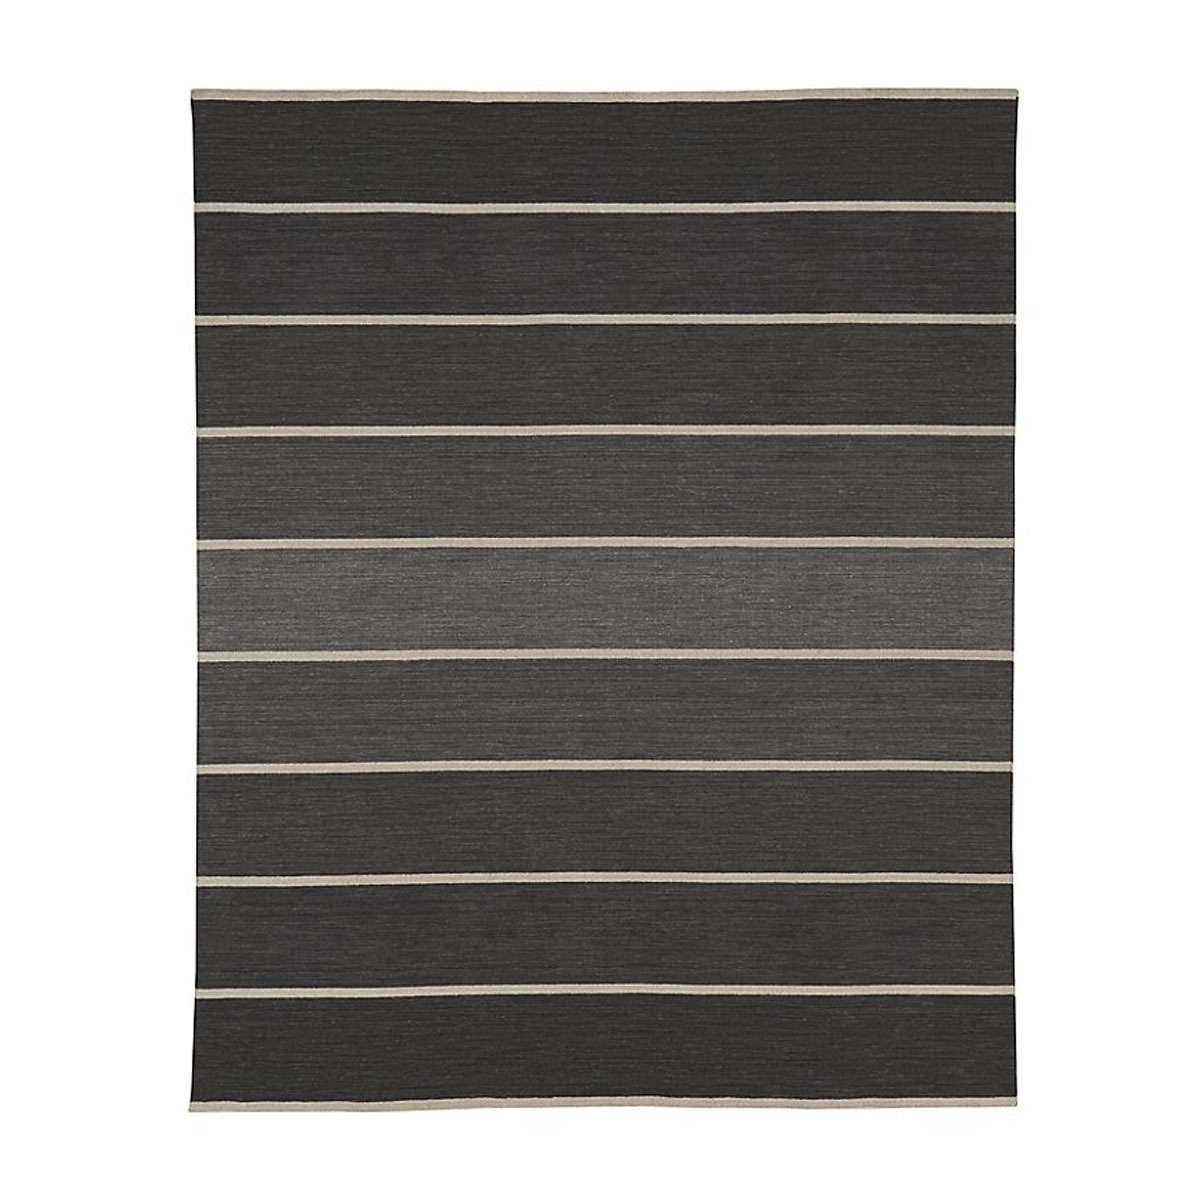 Industrial-inspired rug with an array of grays and straight lines. photo